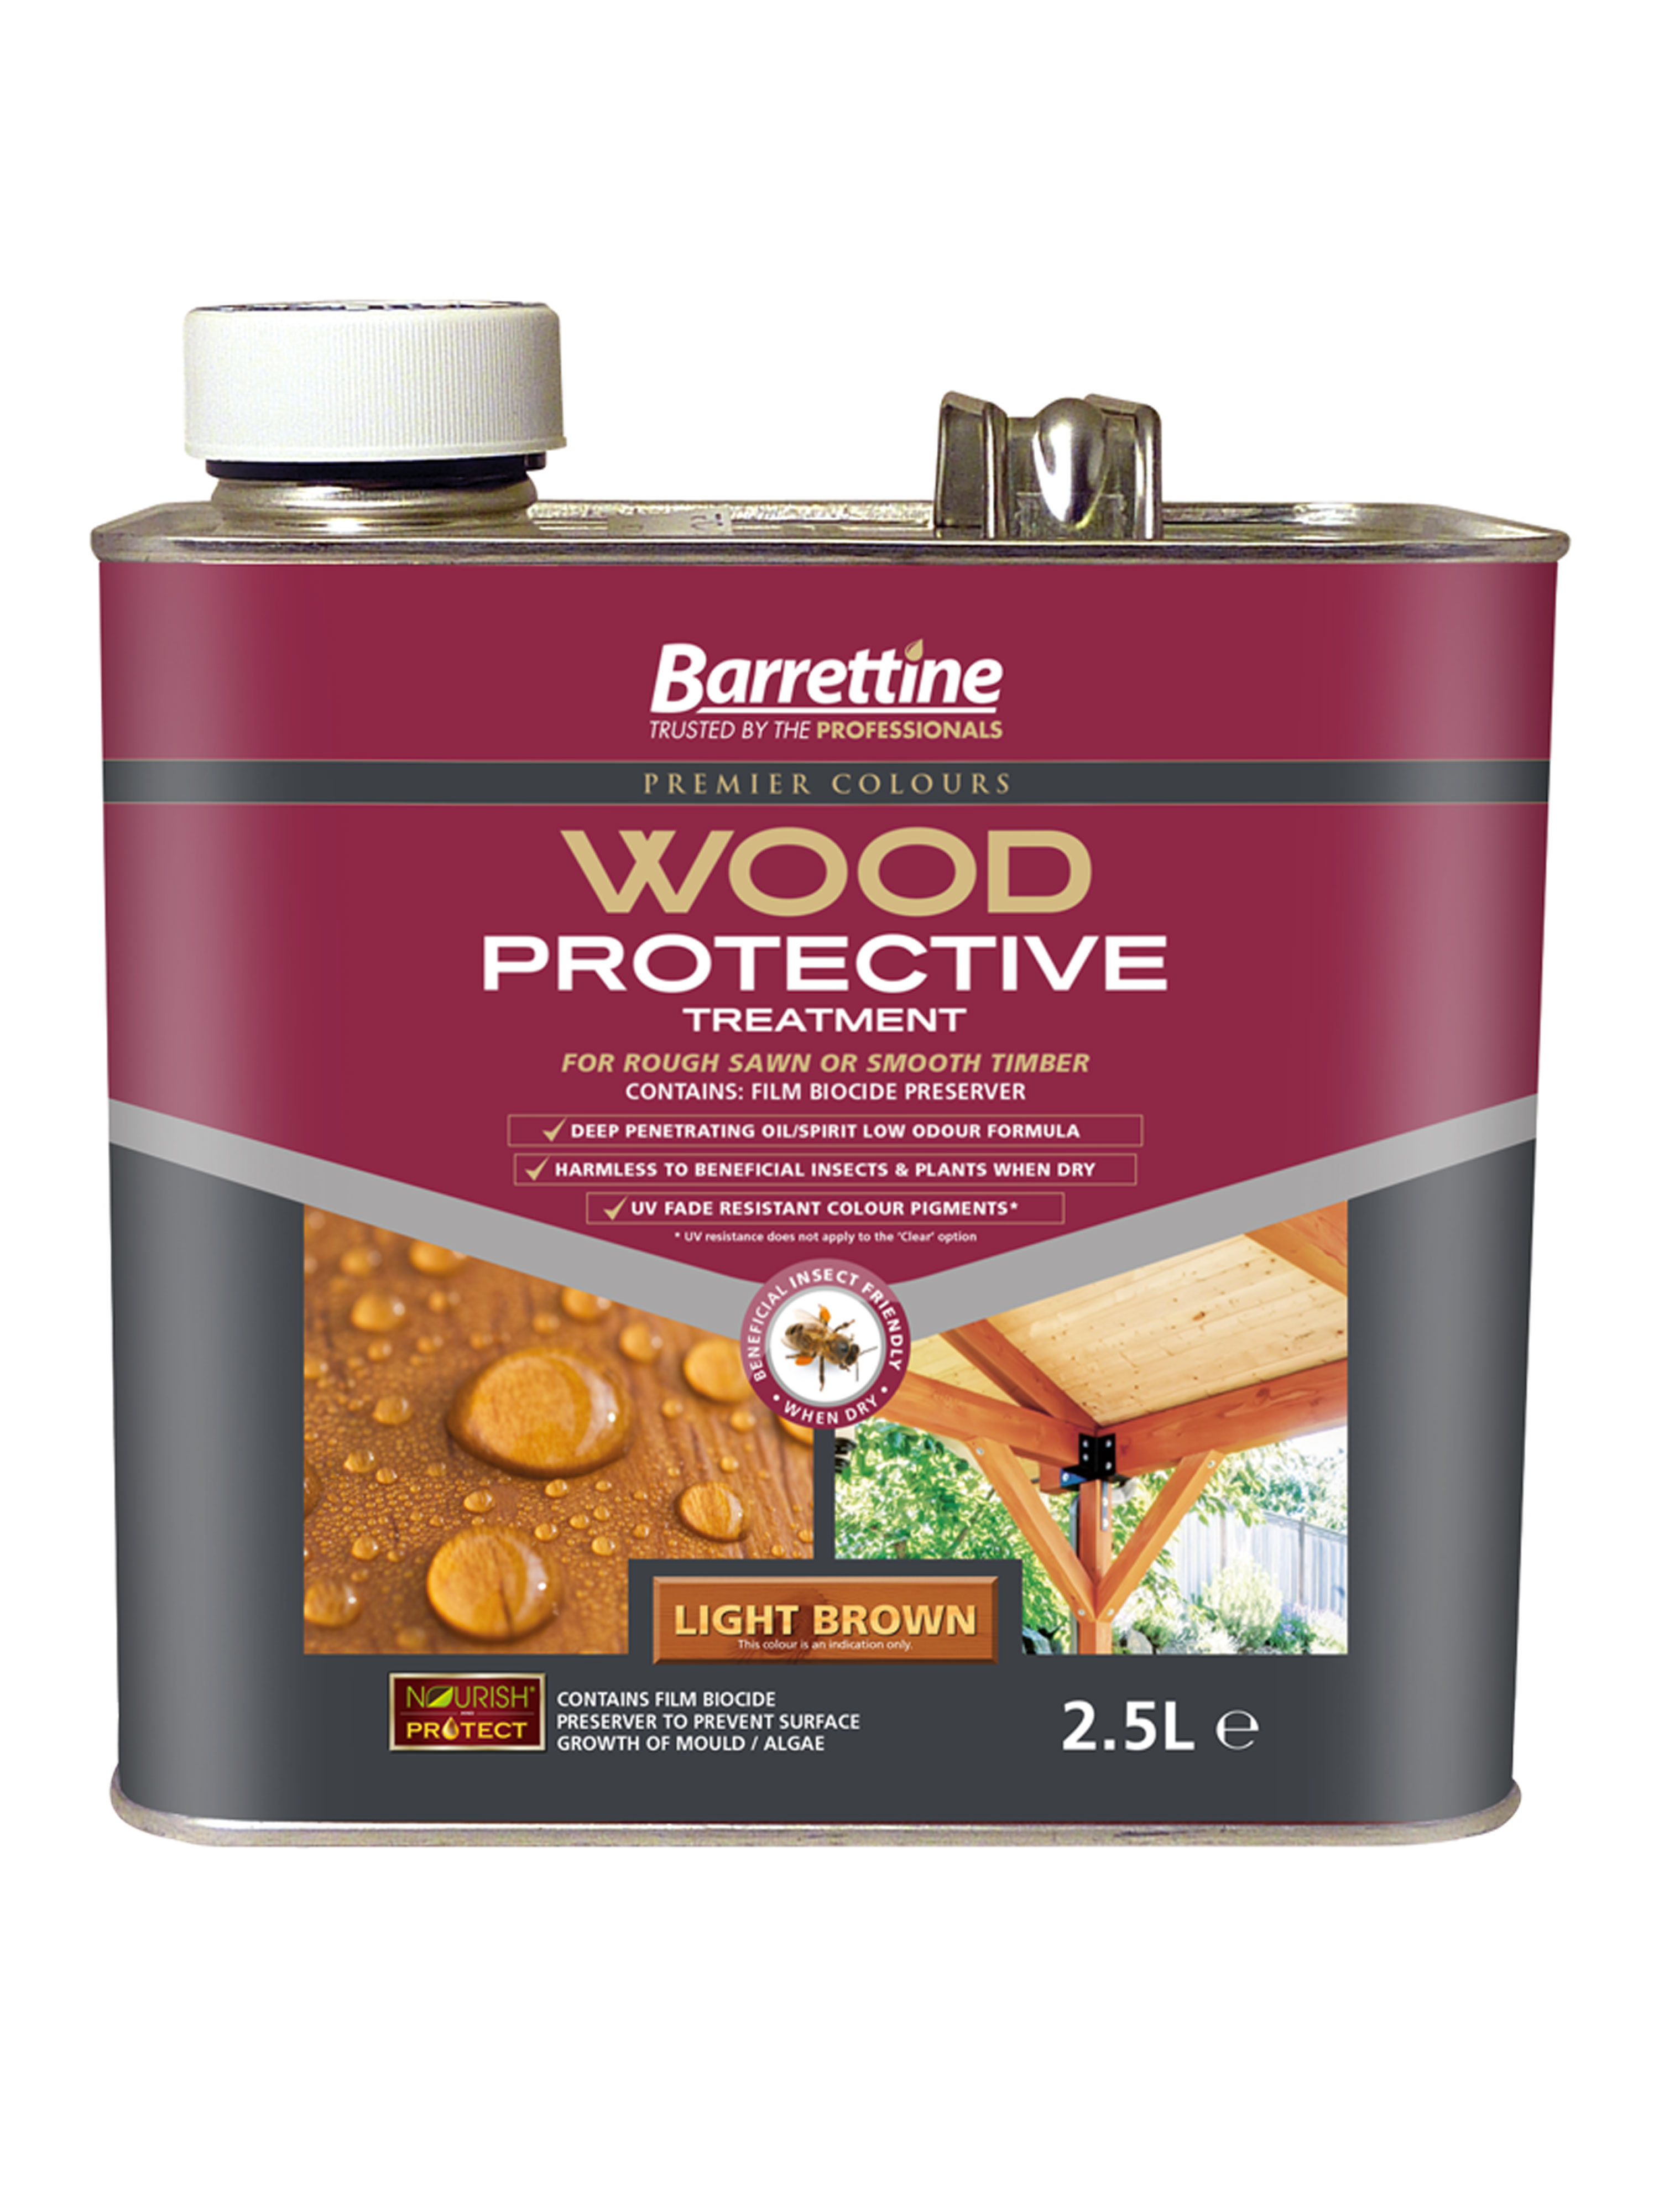 Wood Protective Treatment: Light Brown 2.5L